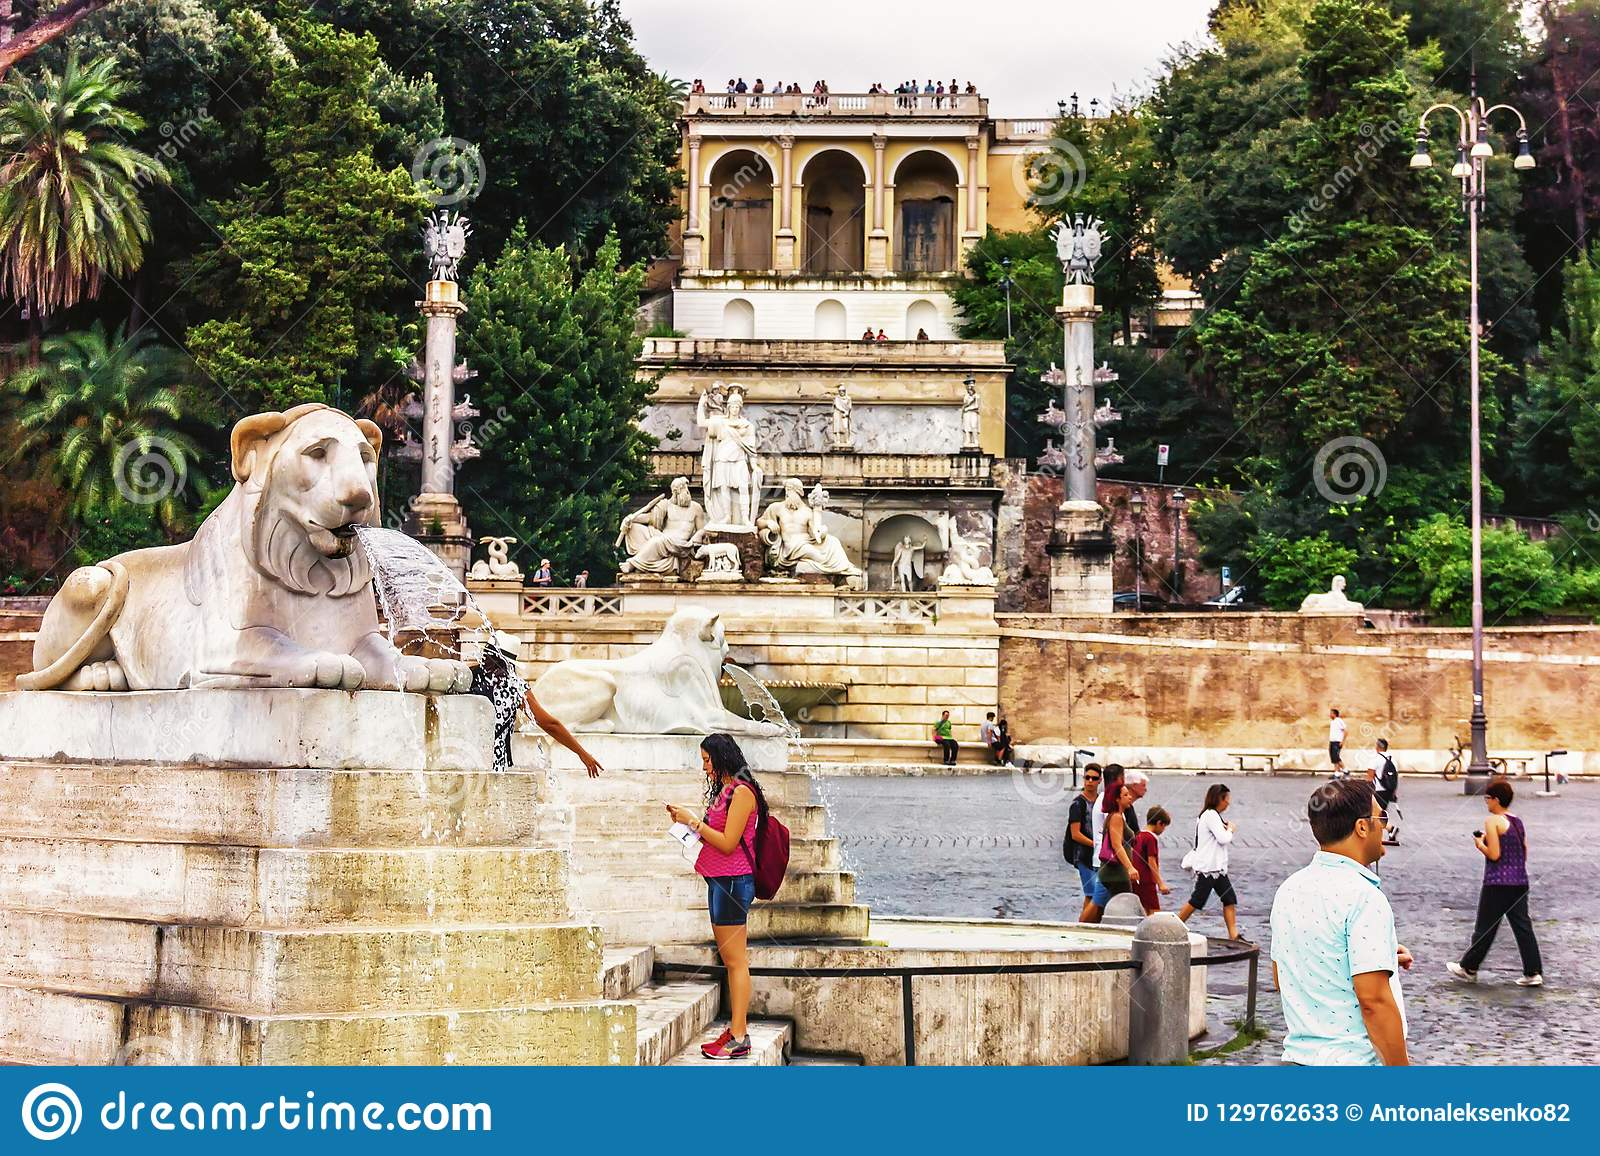 Tourists Near The Fountains In Piazza Del Popolo In From Of